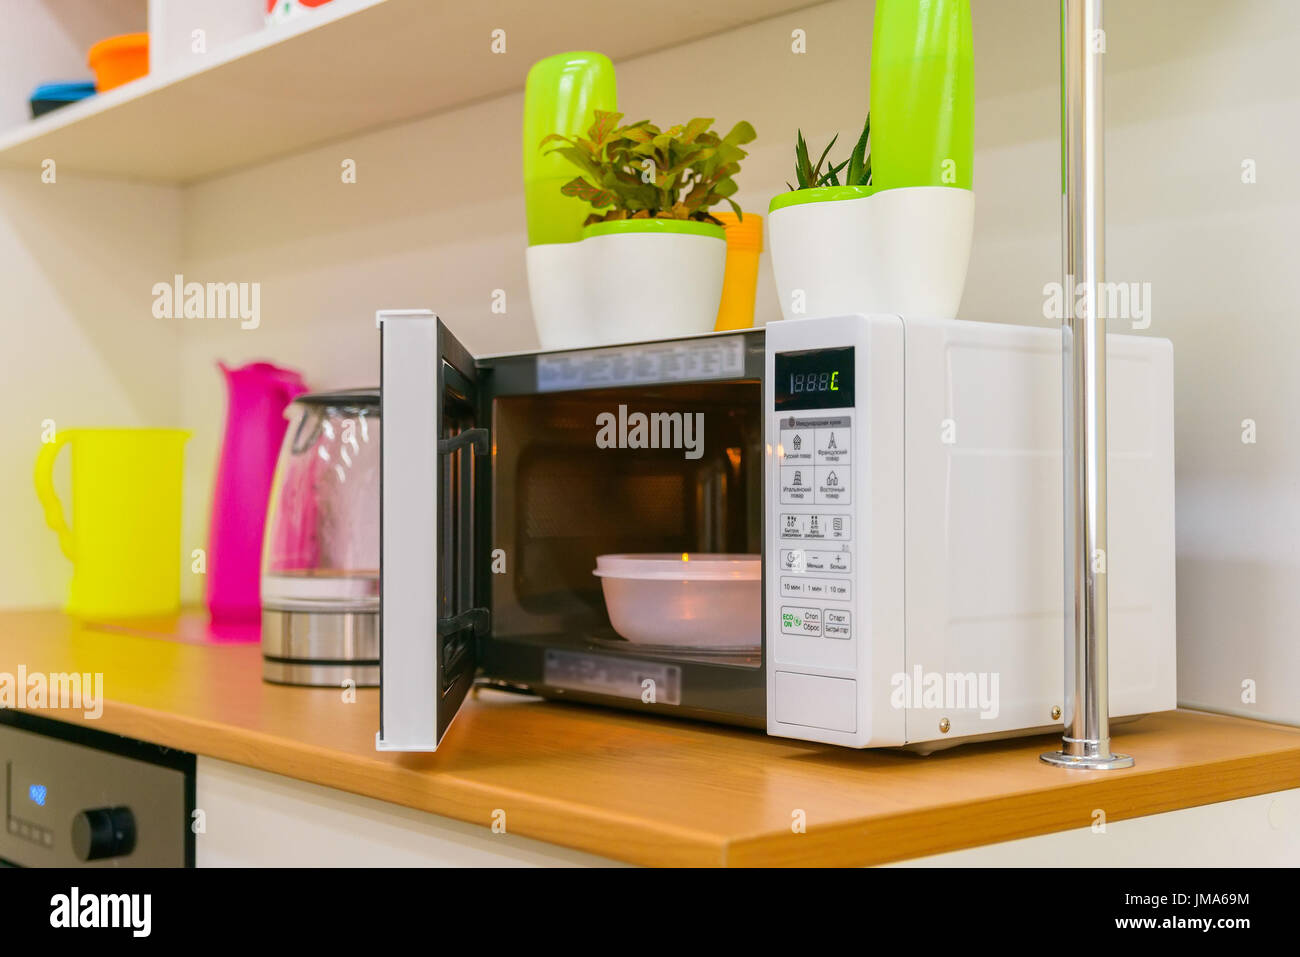 https www alamy com open white microwave oven with plastic bowl inside image150200560 html